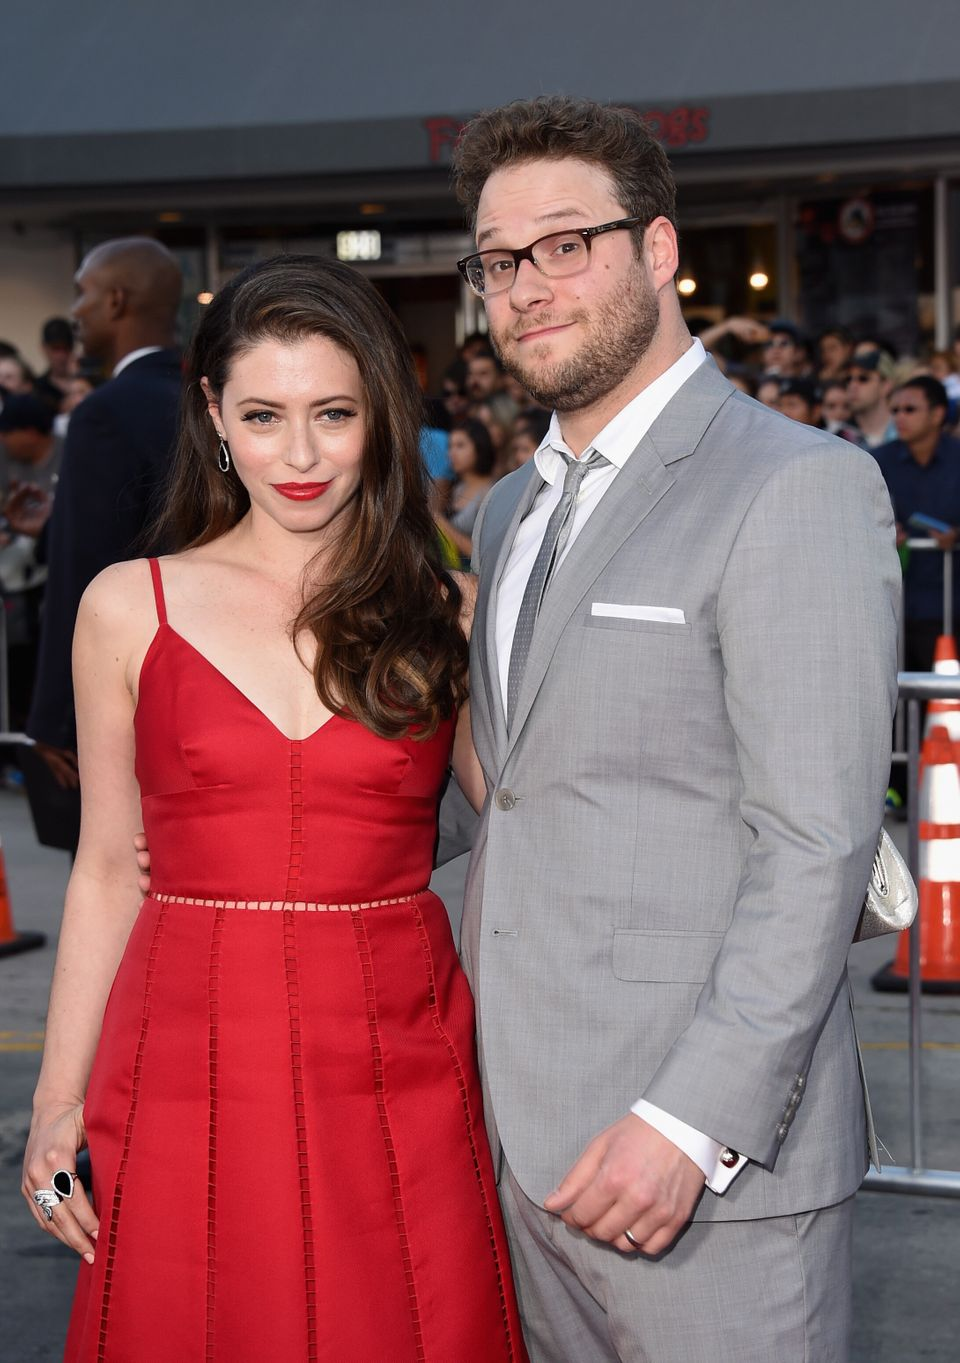 WESTWOOD, CA - APRIL 28:  Actor/producer Seth Rogen (R) and Lauren Miller attend Universal Pictures' 'Neighbors' premiere at